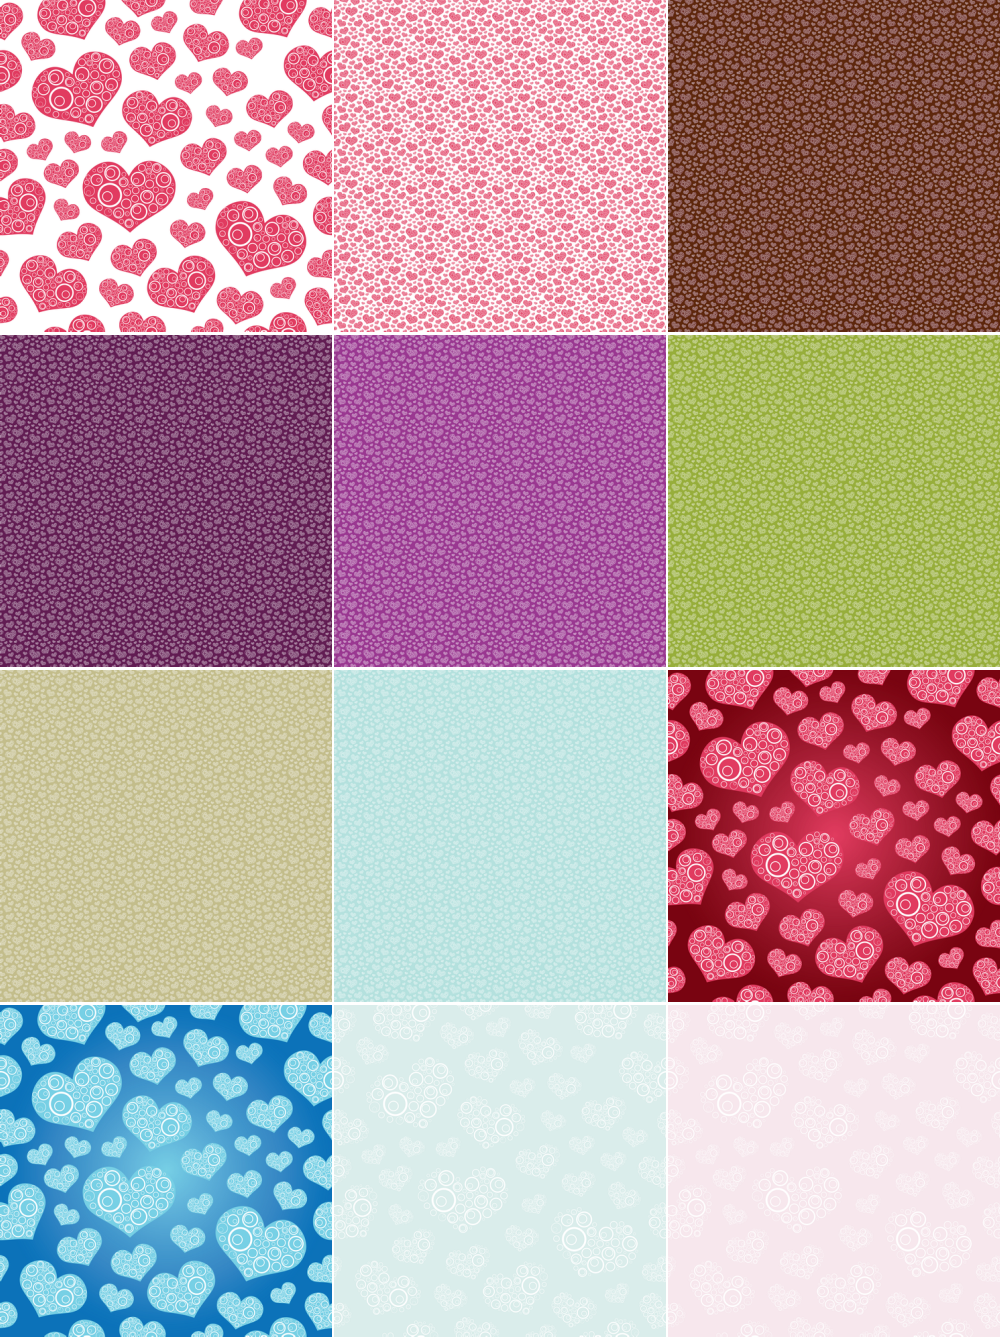 Seamless Hearts Pattern Background Vector